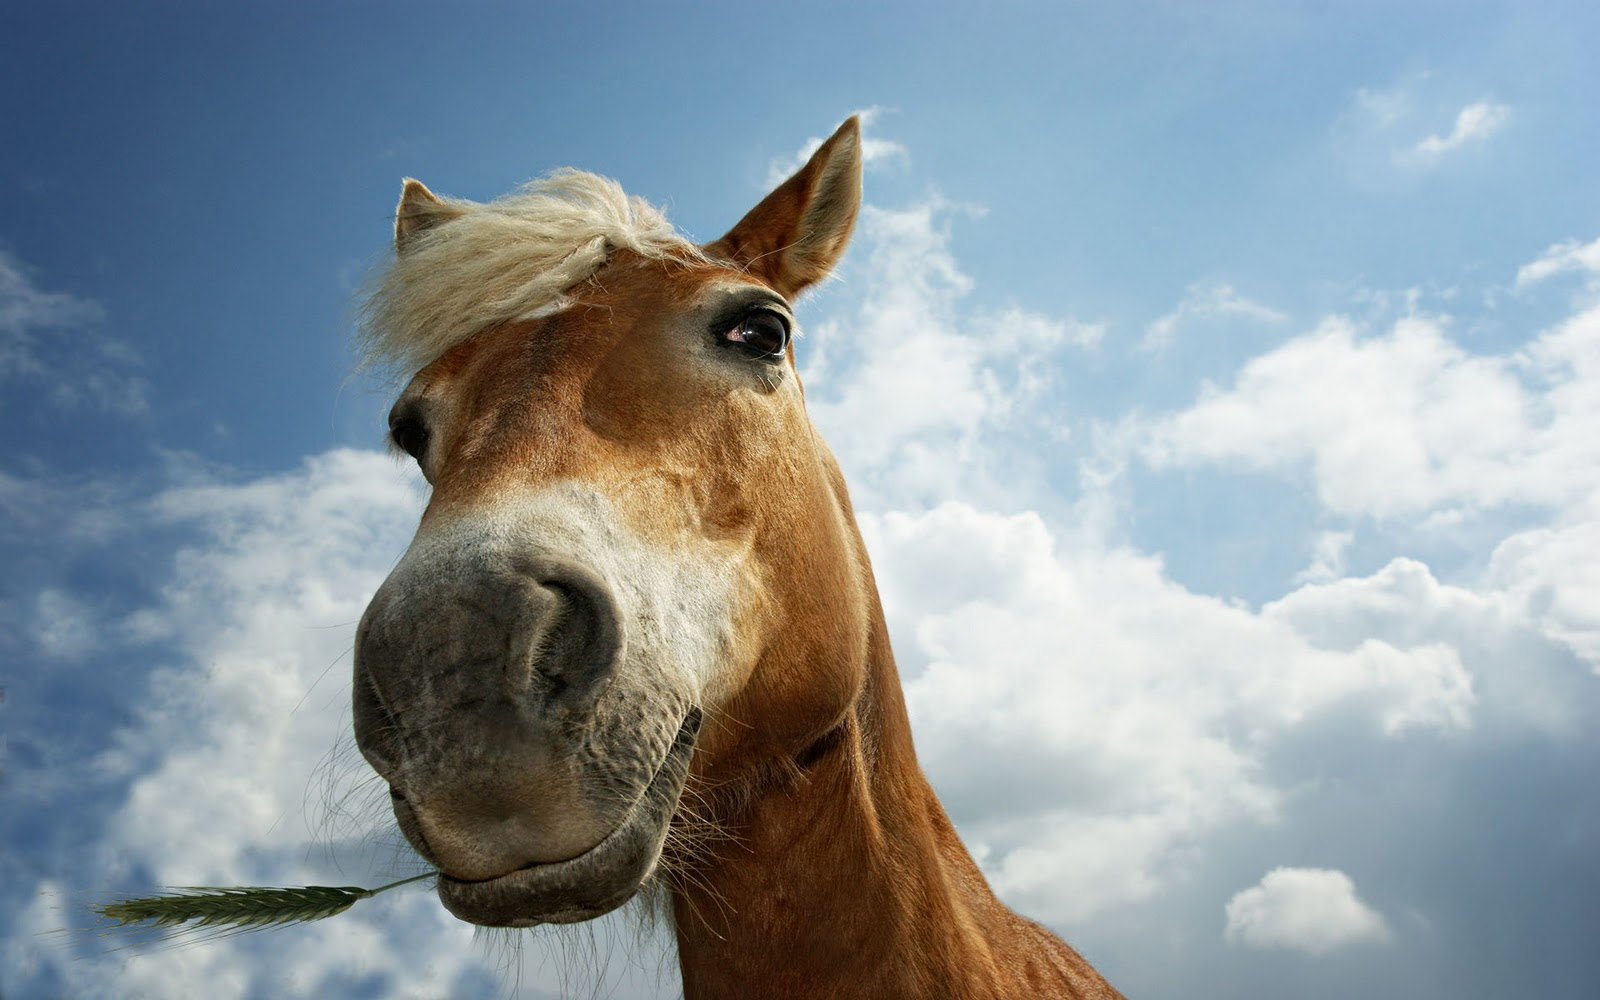 Horse Wallpapers|HD Horses Wallpapers | Beautiful Cool ... Pictures Of Horses